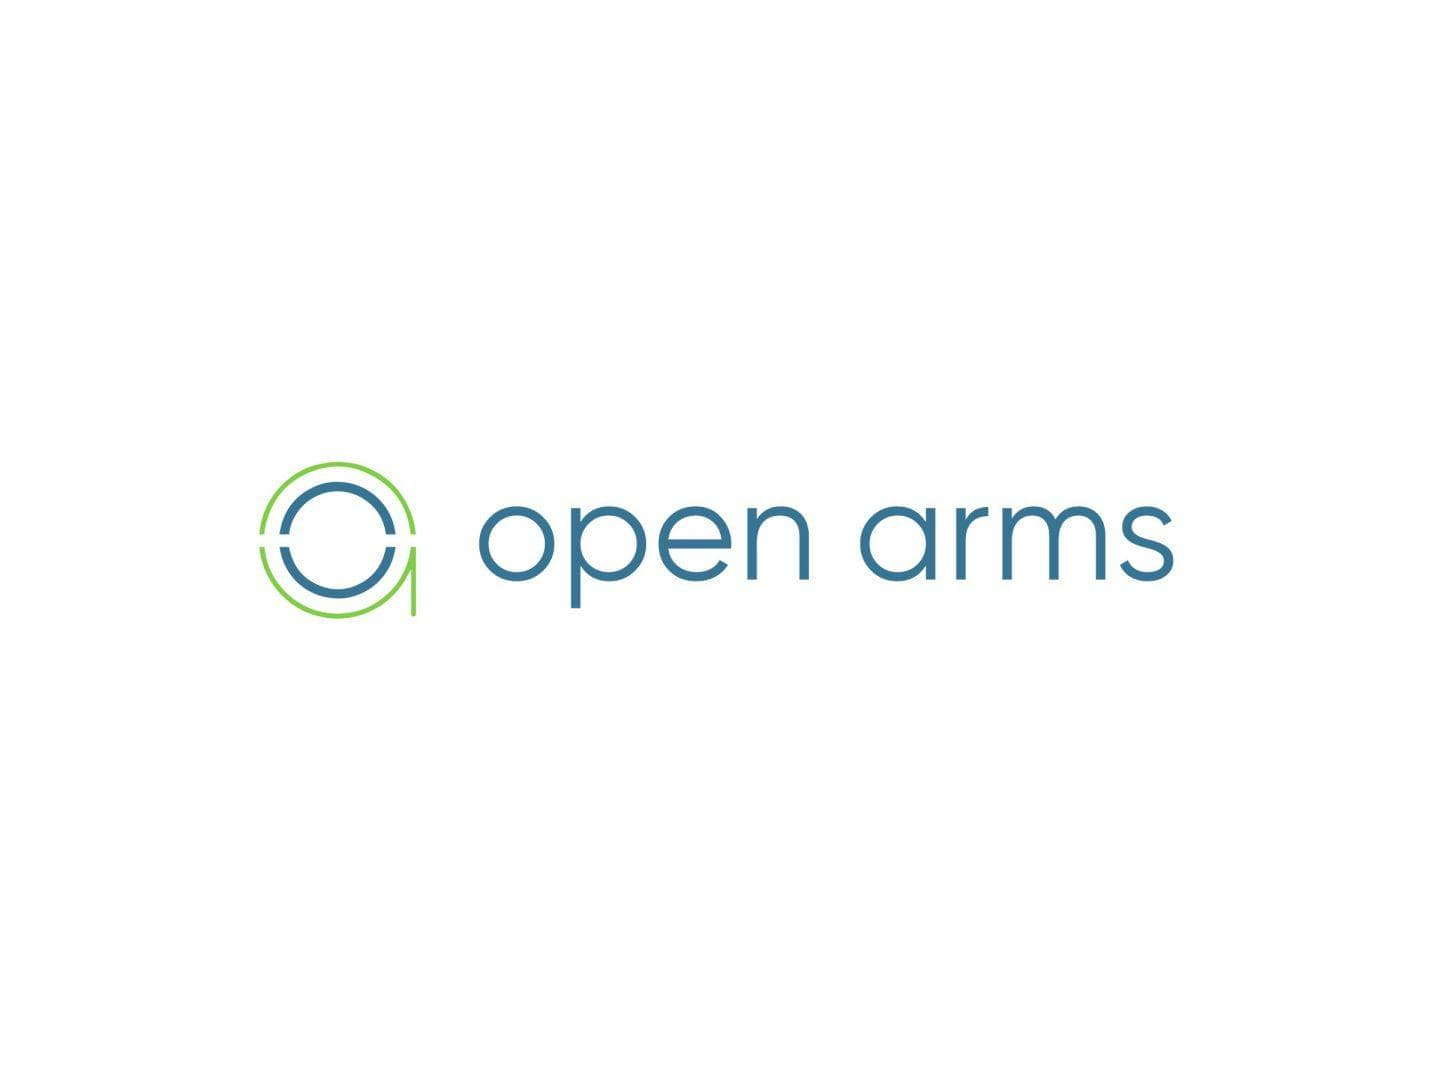 Open Arms Rebrand & Site Redesign